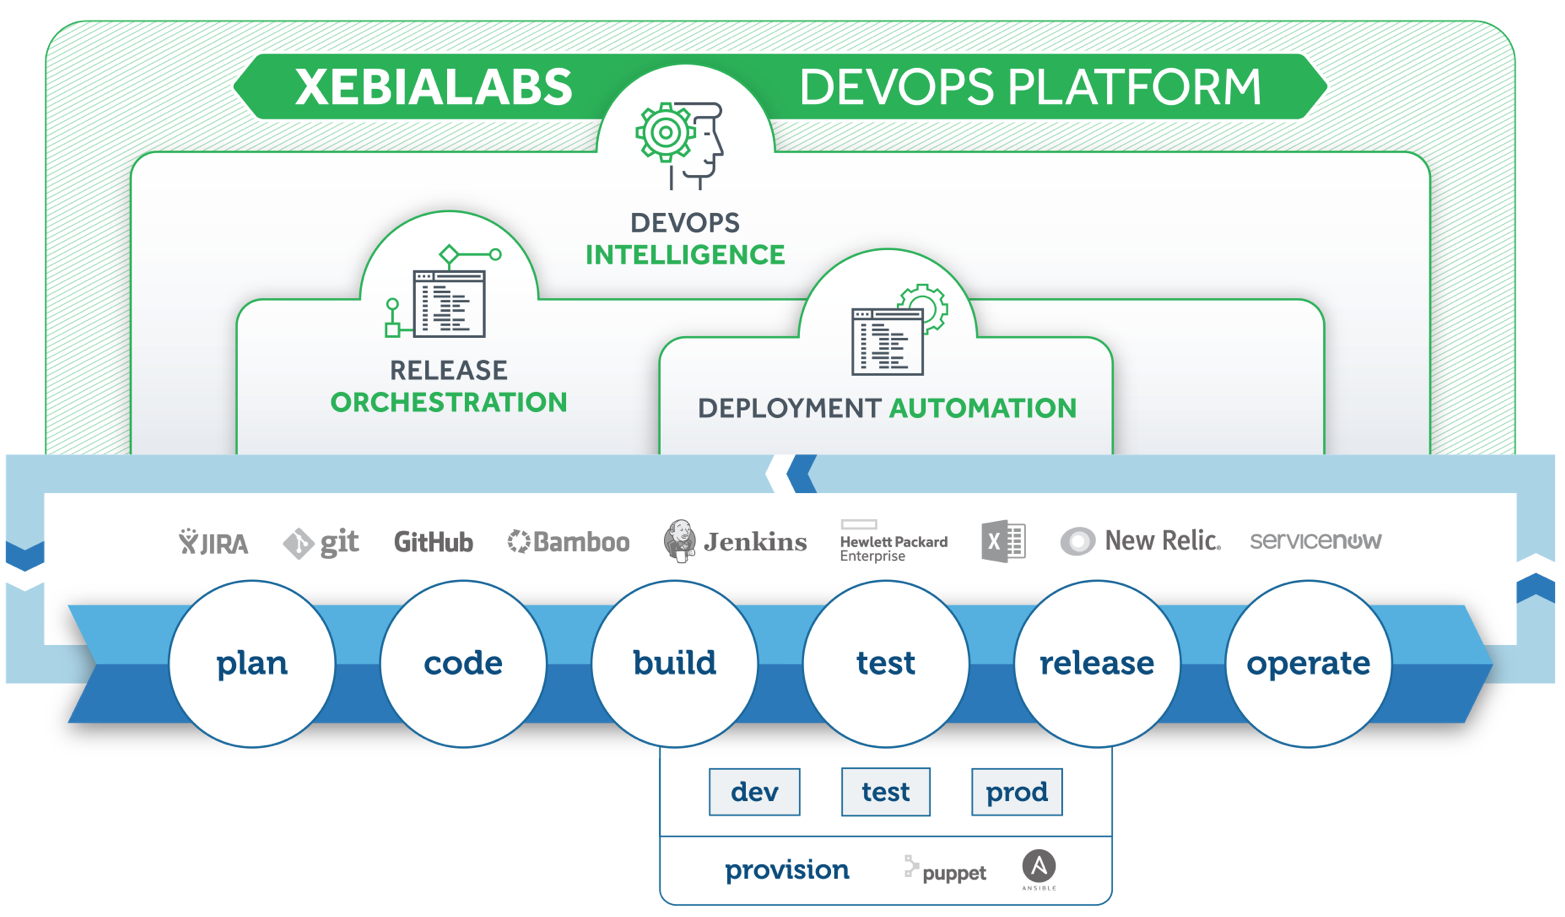 XebiaLabs DevOps Platform for Application Release Automation